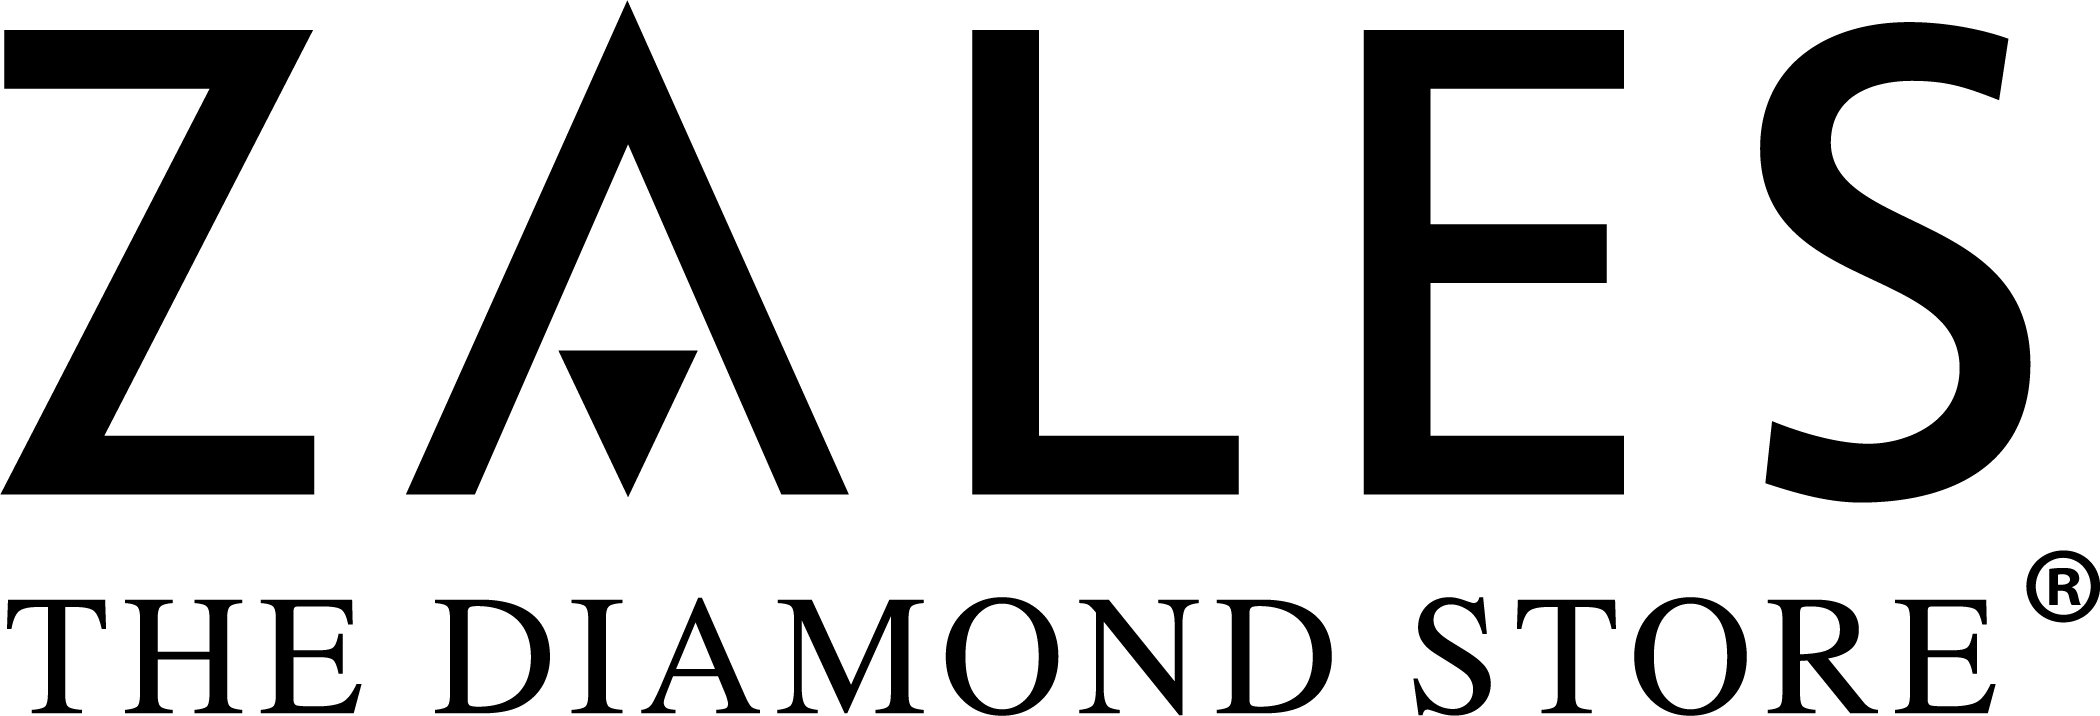 25% Off Winter Jewelry Sale from Zales Jewelers